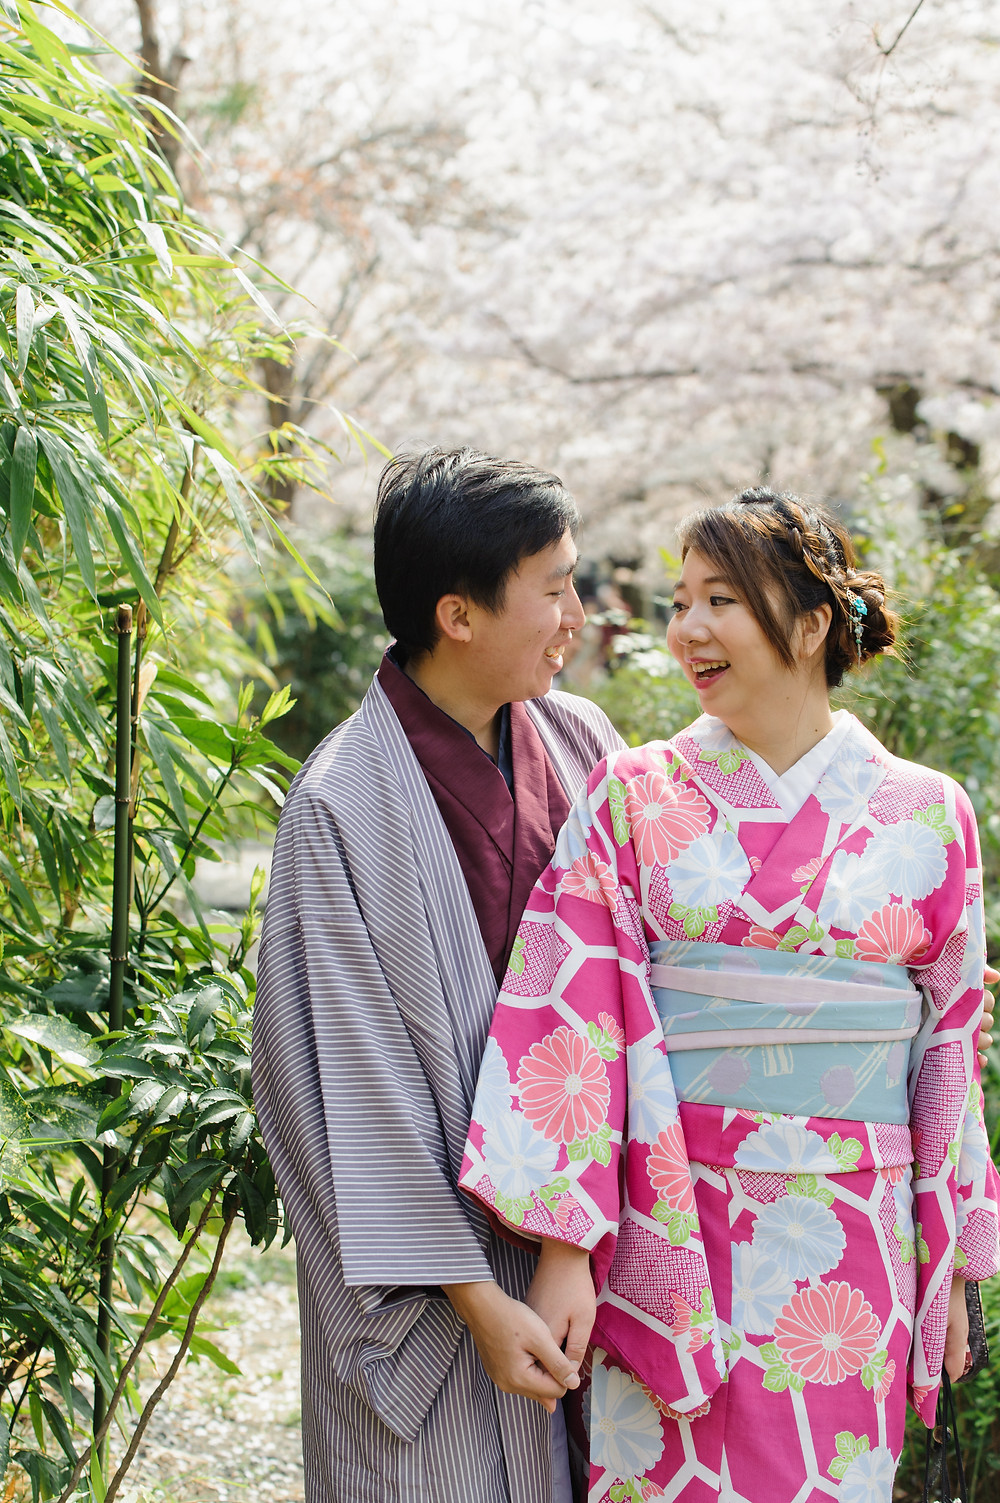 Laughing together in Kimonos